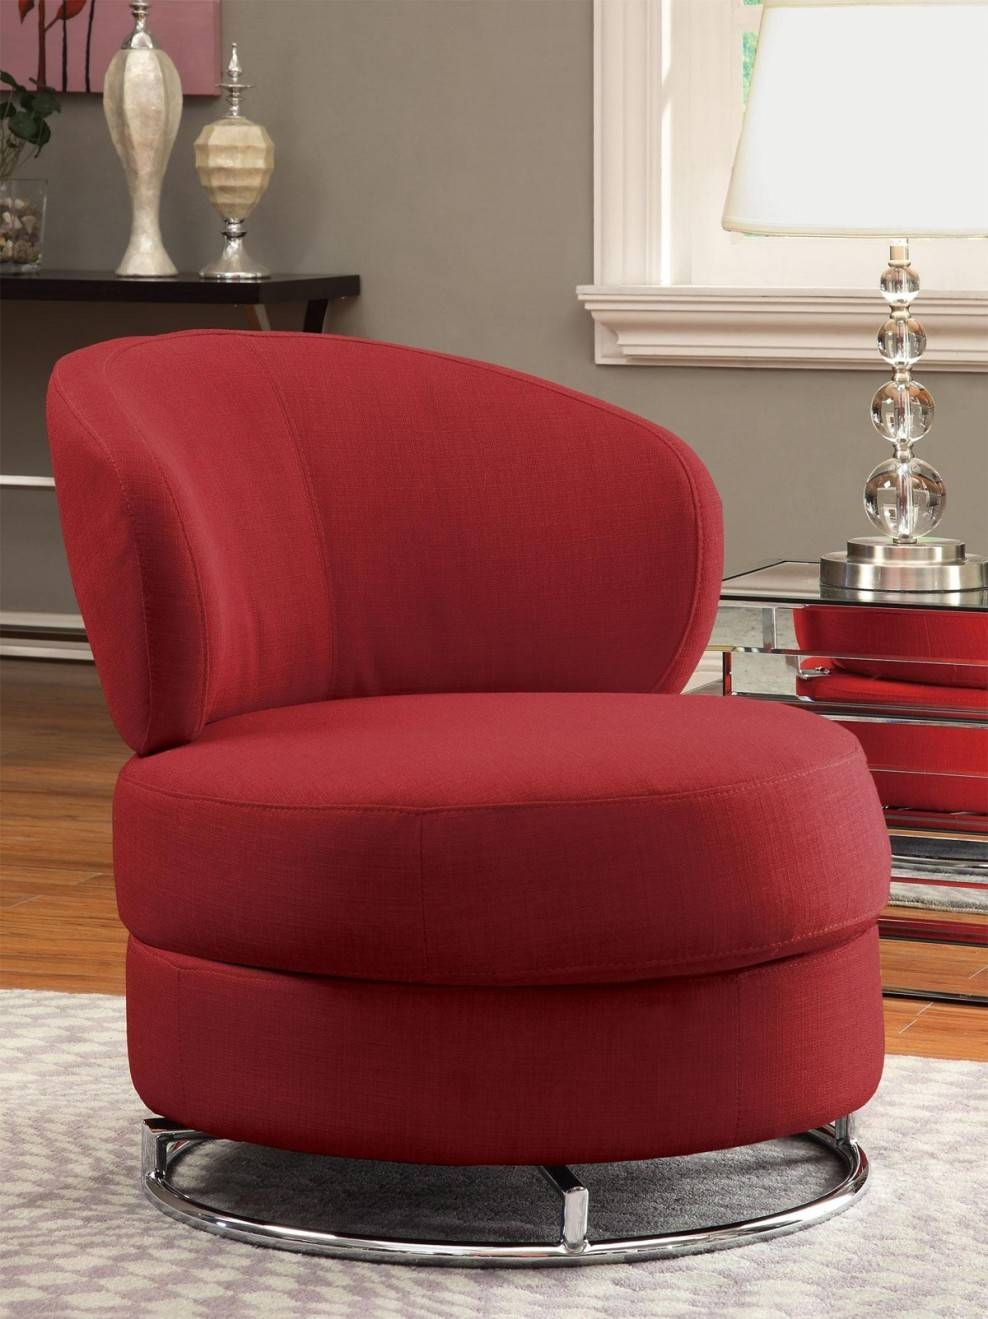 Round Living Room Chair Living Room Design And Living Room Ideas Within Circle Sofa Chairs (View 19 of 30)